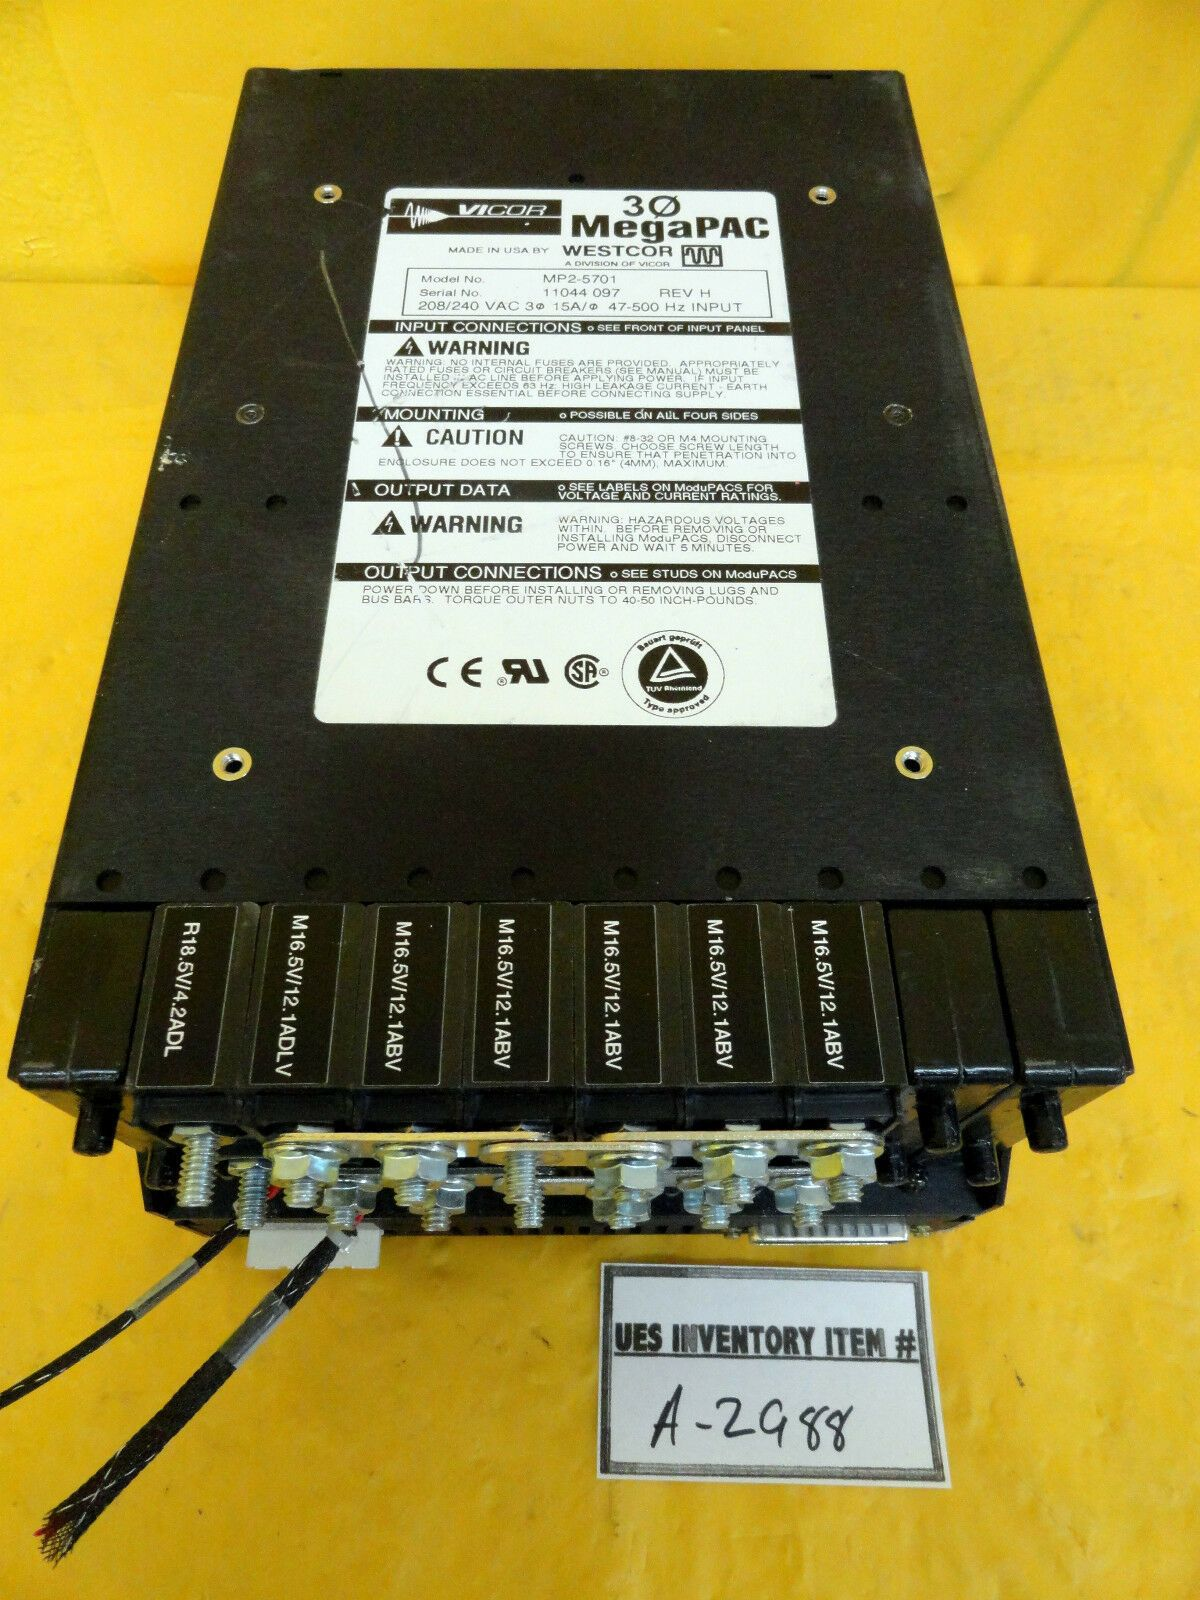 Vicor MP2-5701 Power Supply 3Φ MegaPAC Used Working